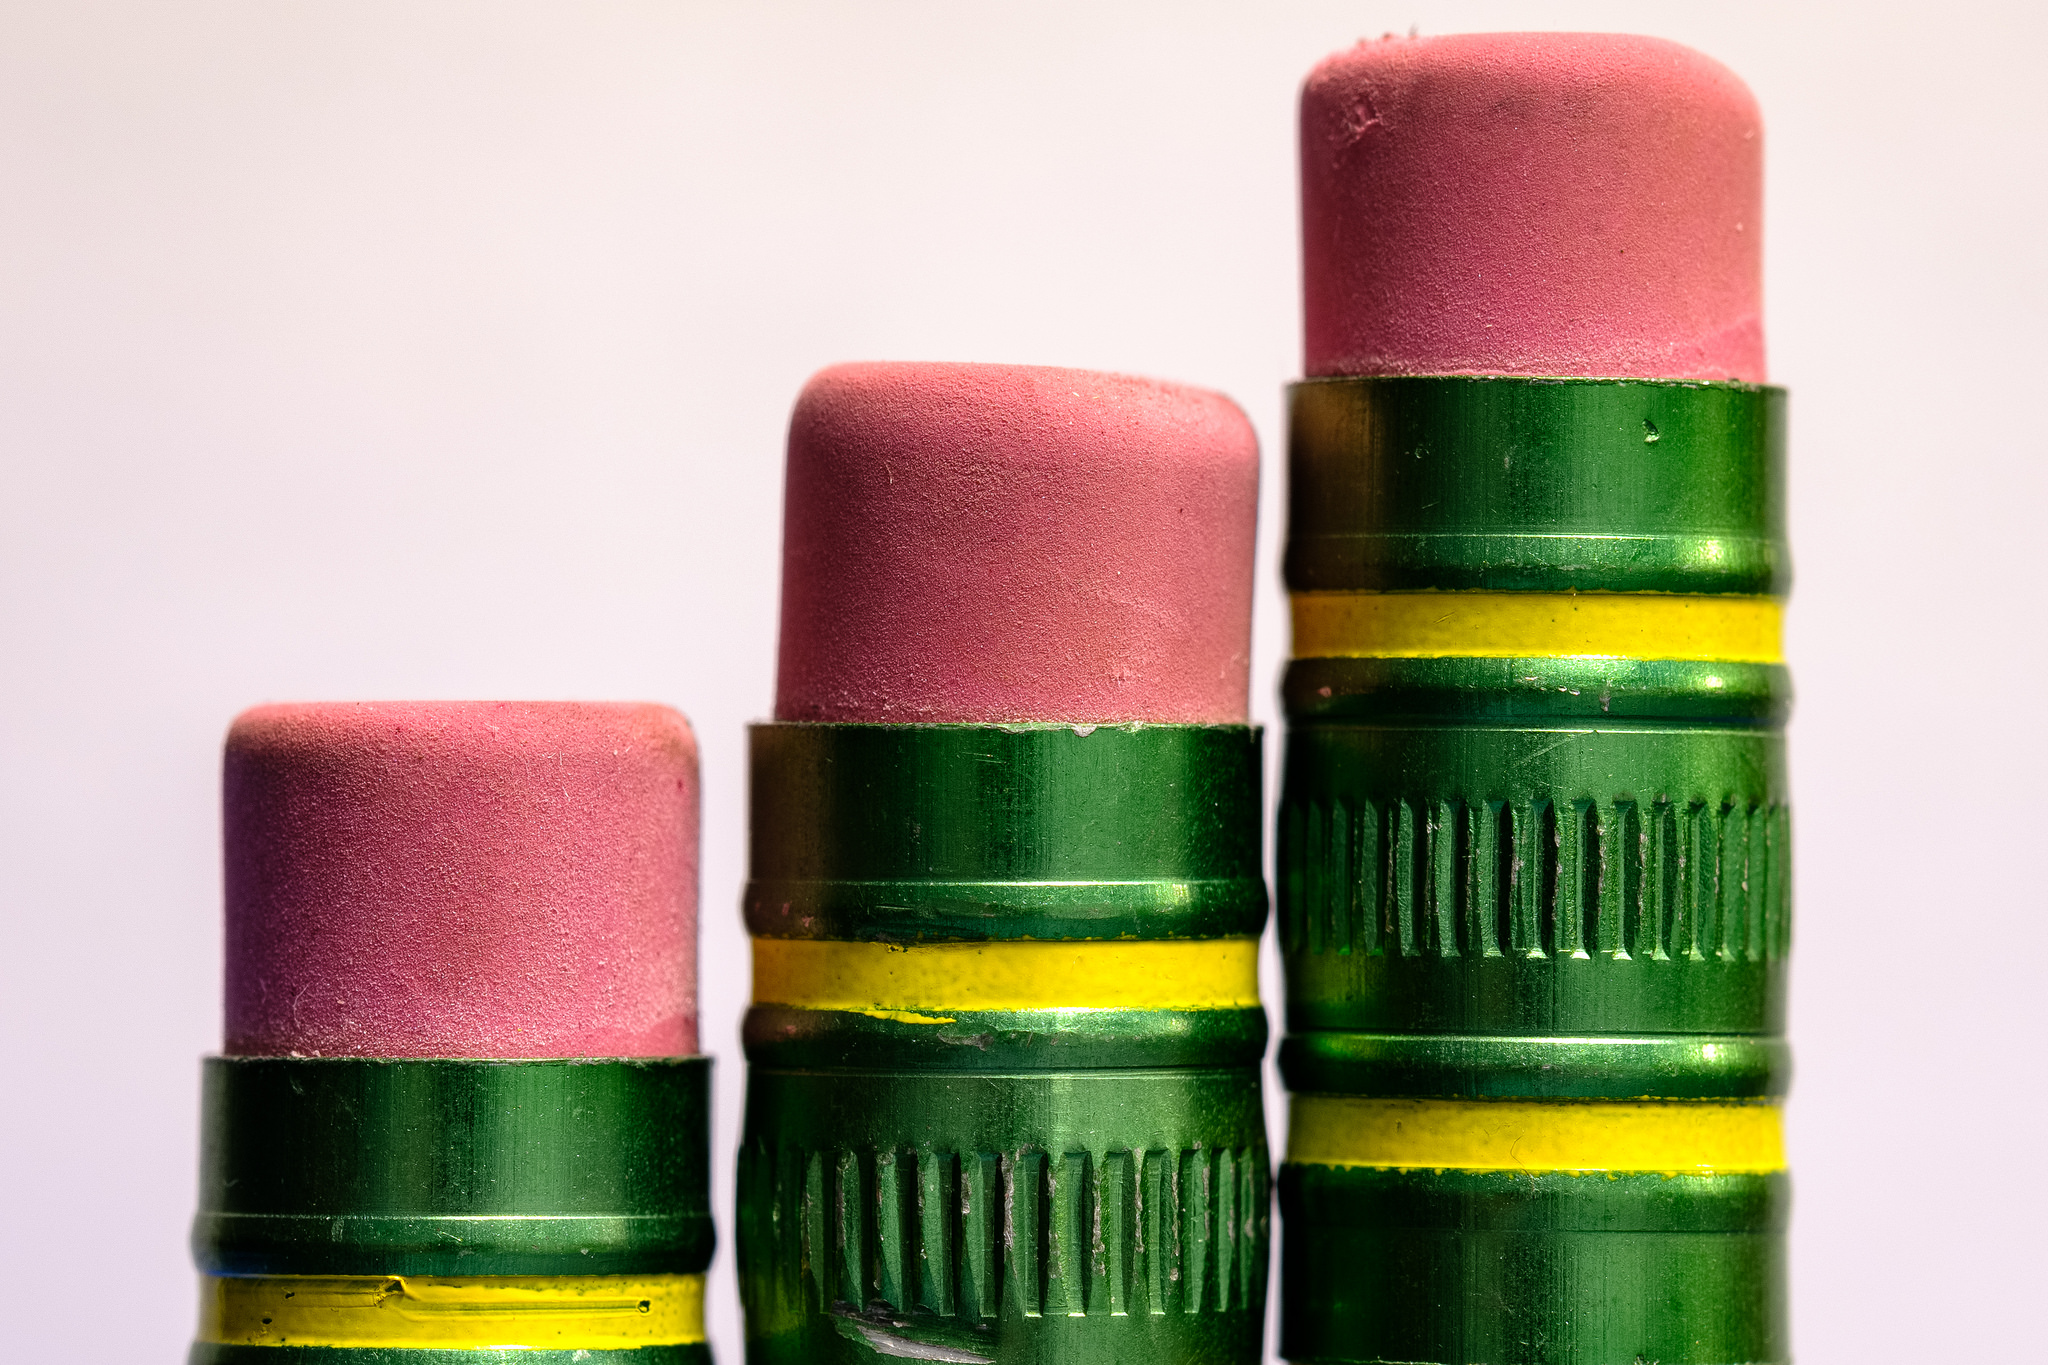 three pencil tops with erasers close up